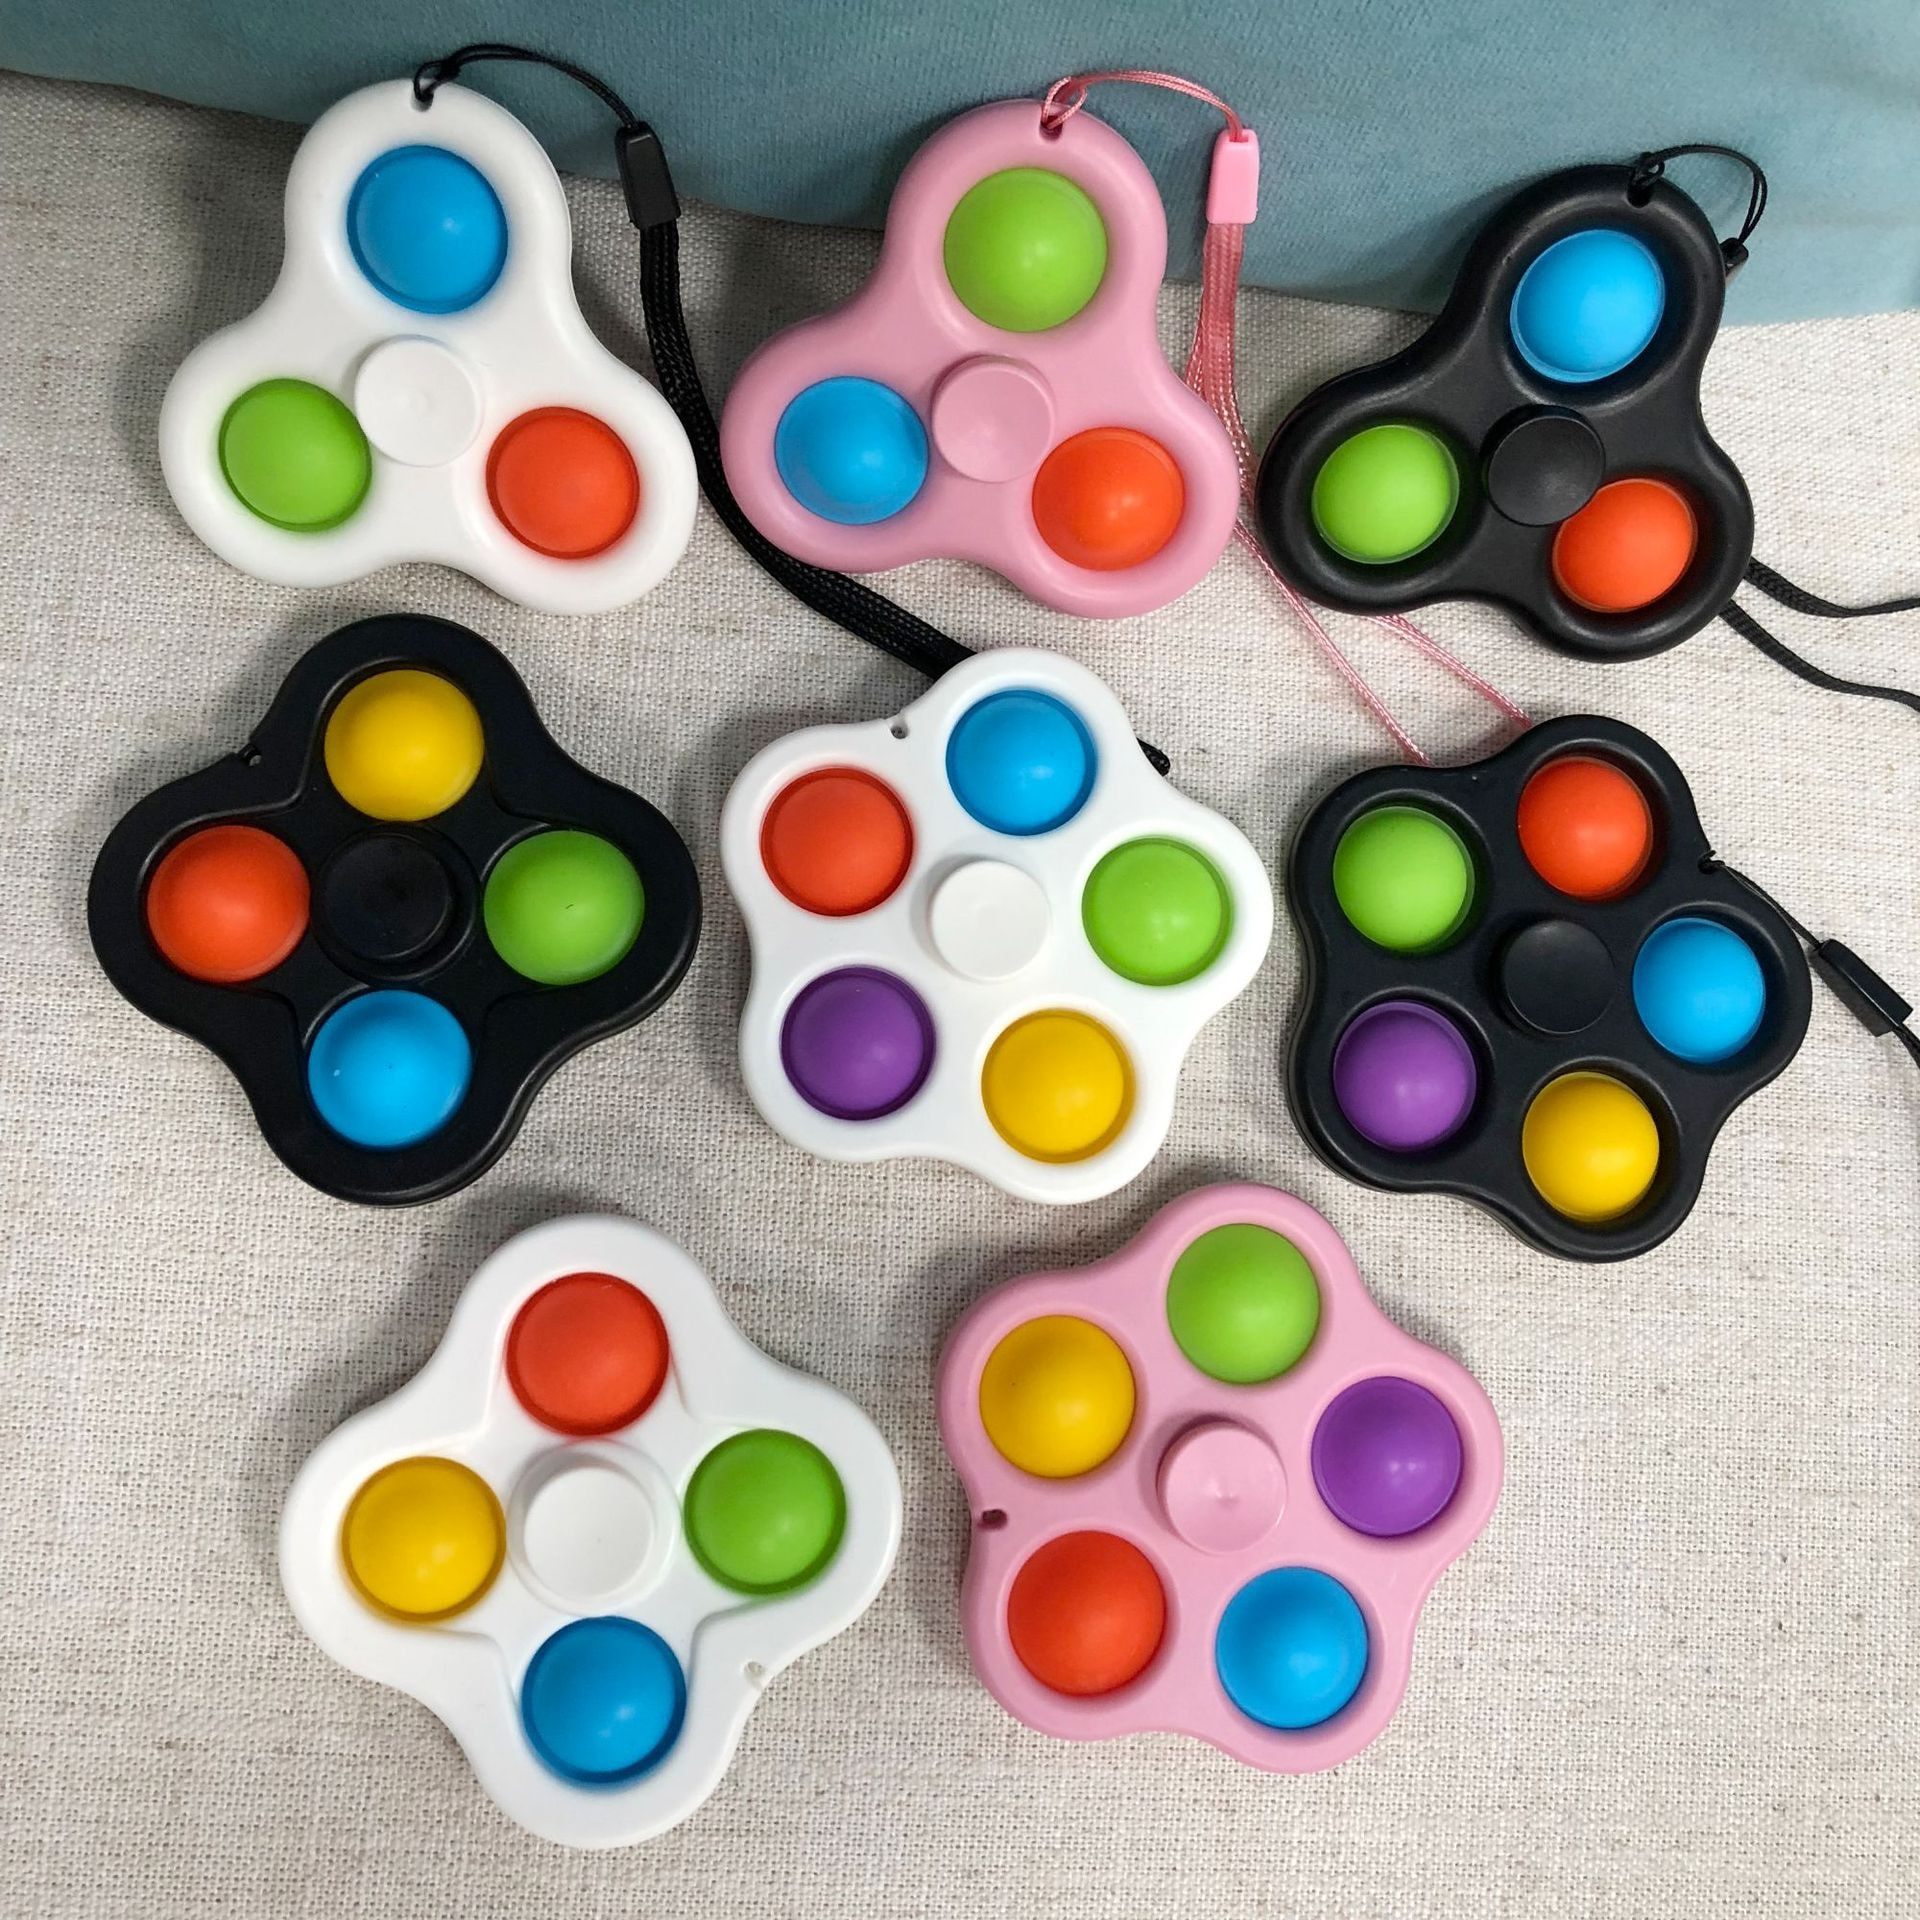 Simple Dimple Spinner Push Pop Fidget Toy Anti Stress Toy Anxiety Relief Toy Pop Sensory Toy - Popping Fidgets